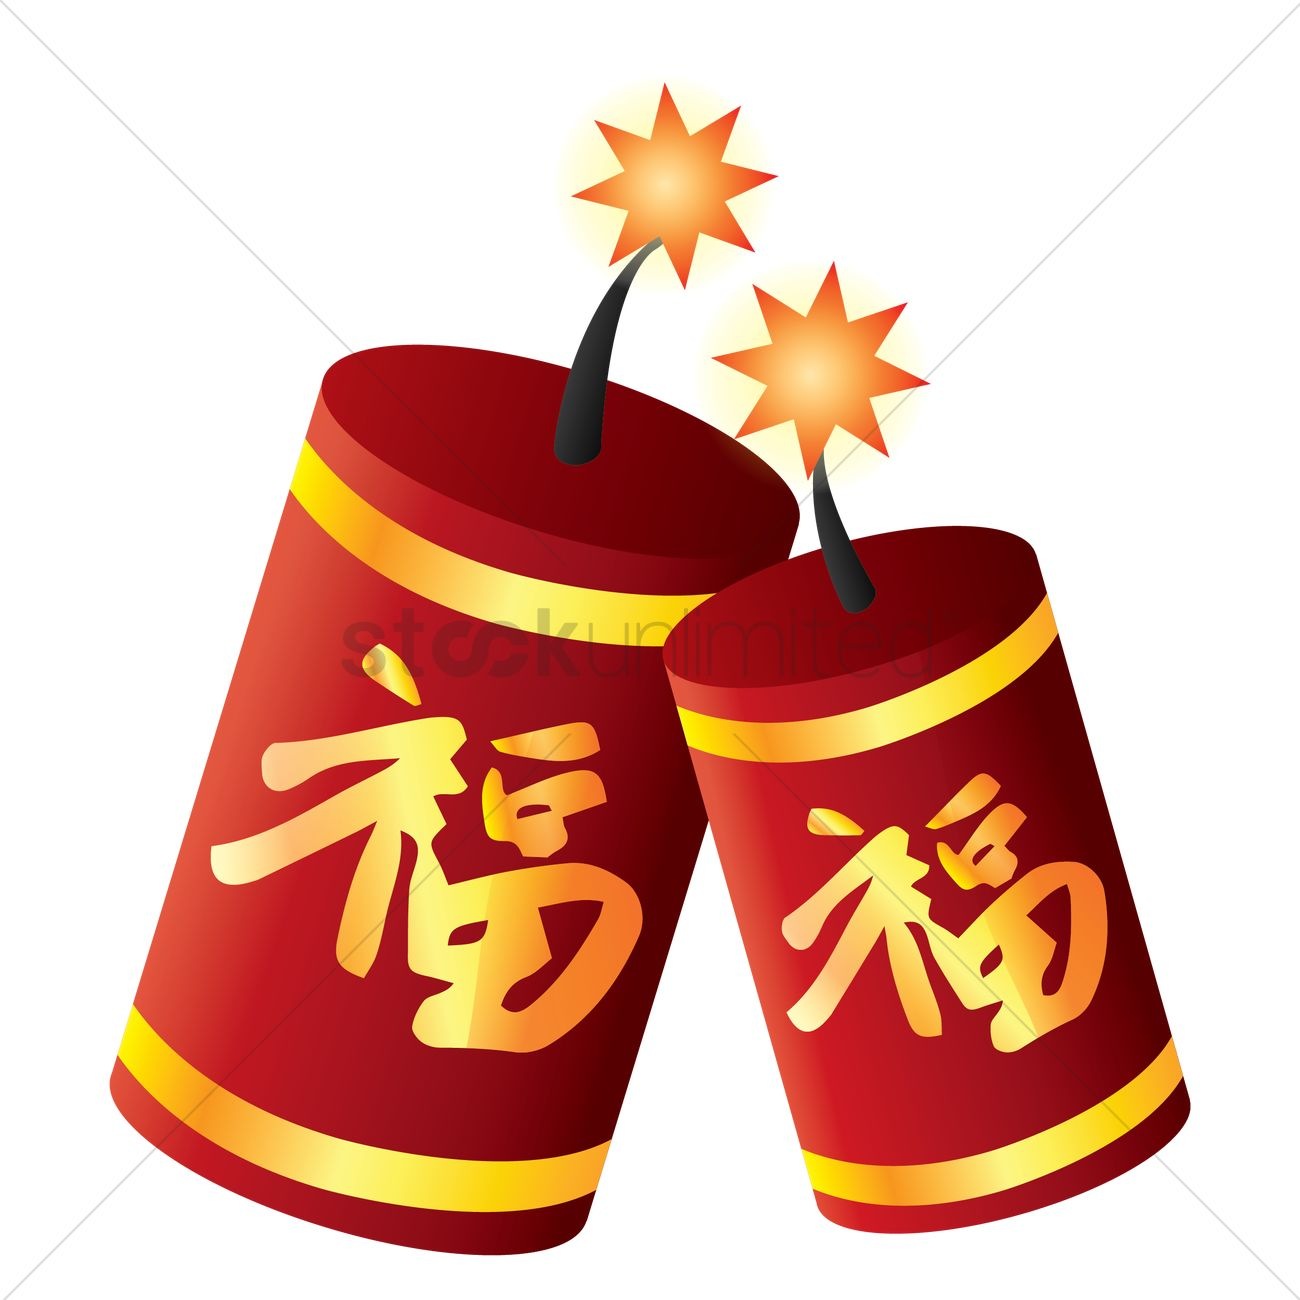 chinese new year fire crackers vector image 1403065 stockunlimited rh stockunlimited com free chinese new year clipart images